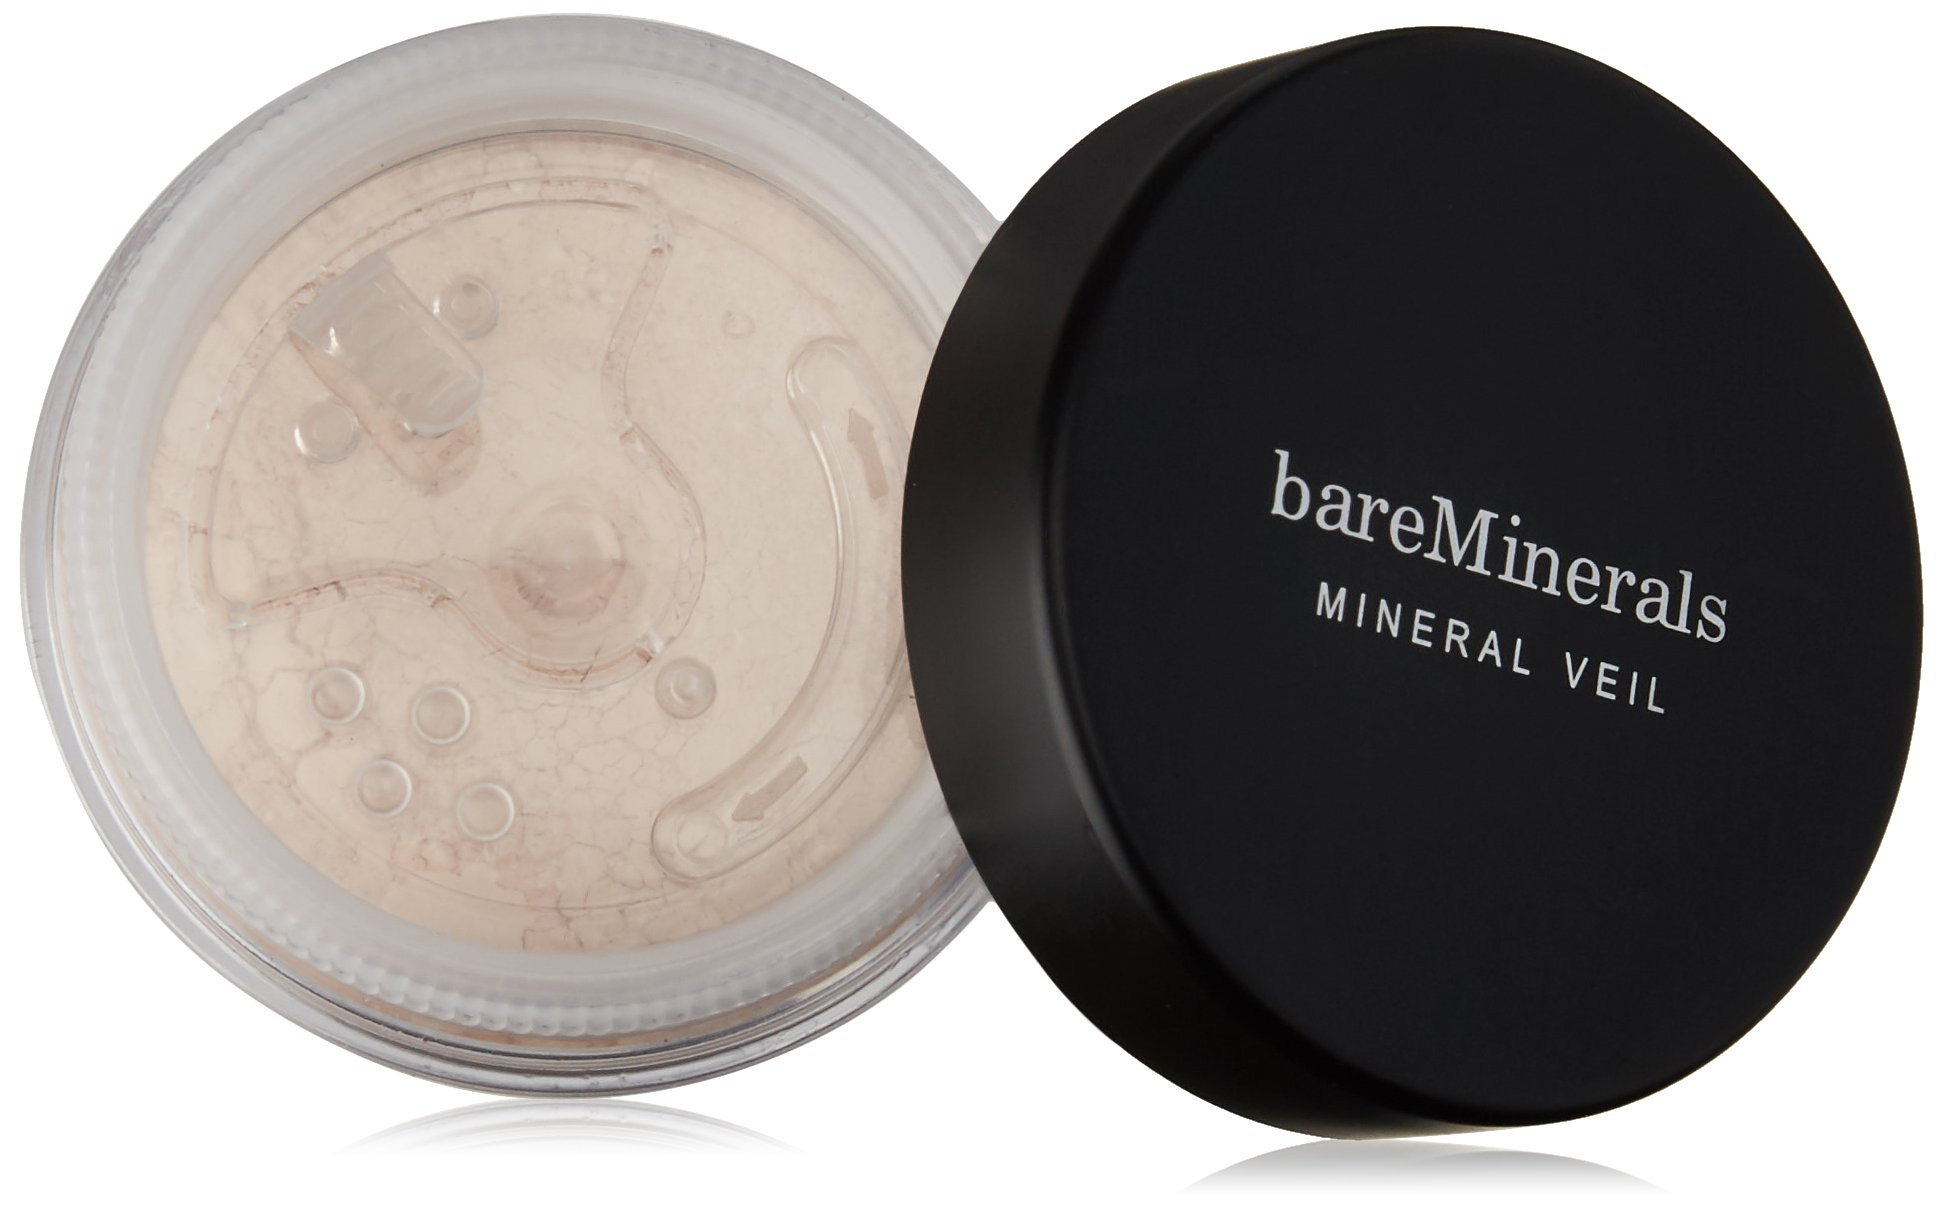 Bare Escentuals Mineral Veil Finishing Powder, 9g-Full Size by bareMinerals